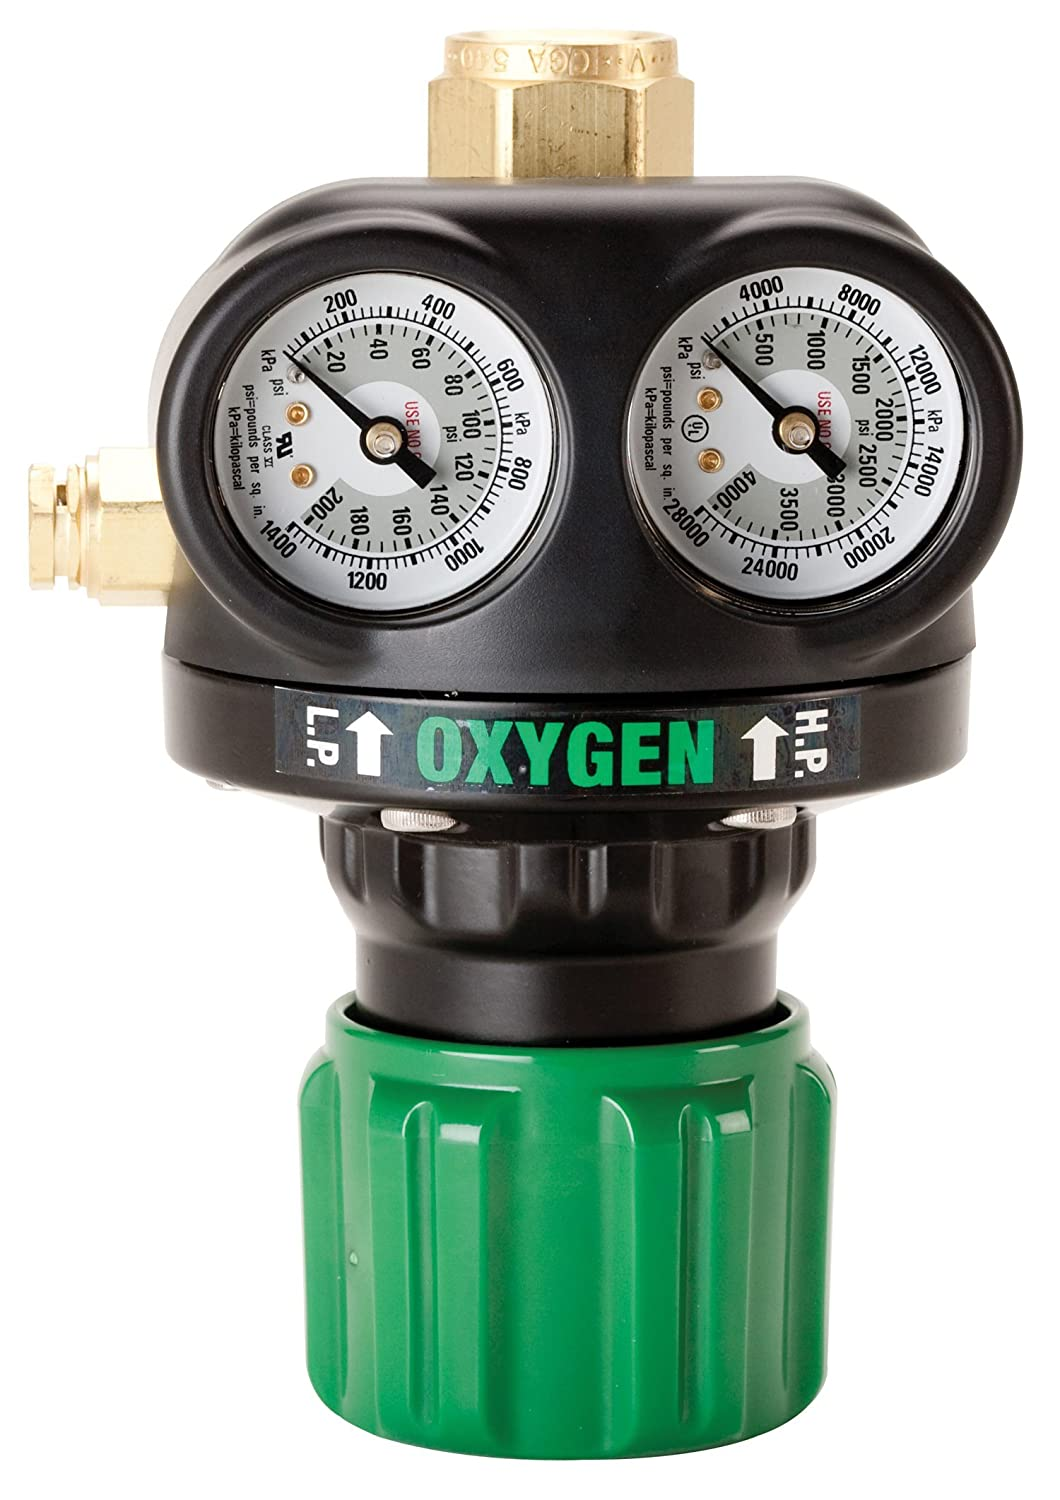 Victor Technologies 0781-5127 ESS4-125-540 High Capacity Single Stage Oxygen Regulator, 5-125 psig Delivery Range, CGA 540 Inlet Connection